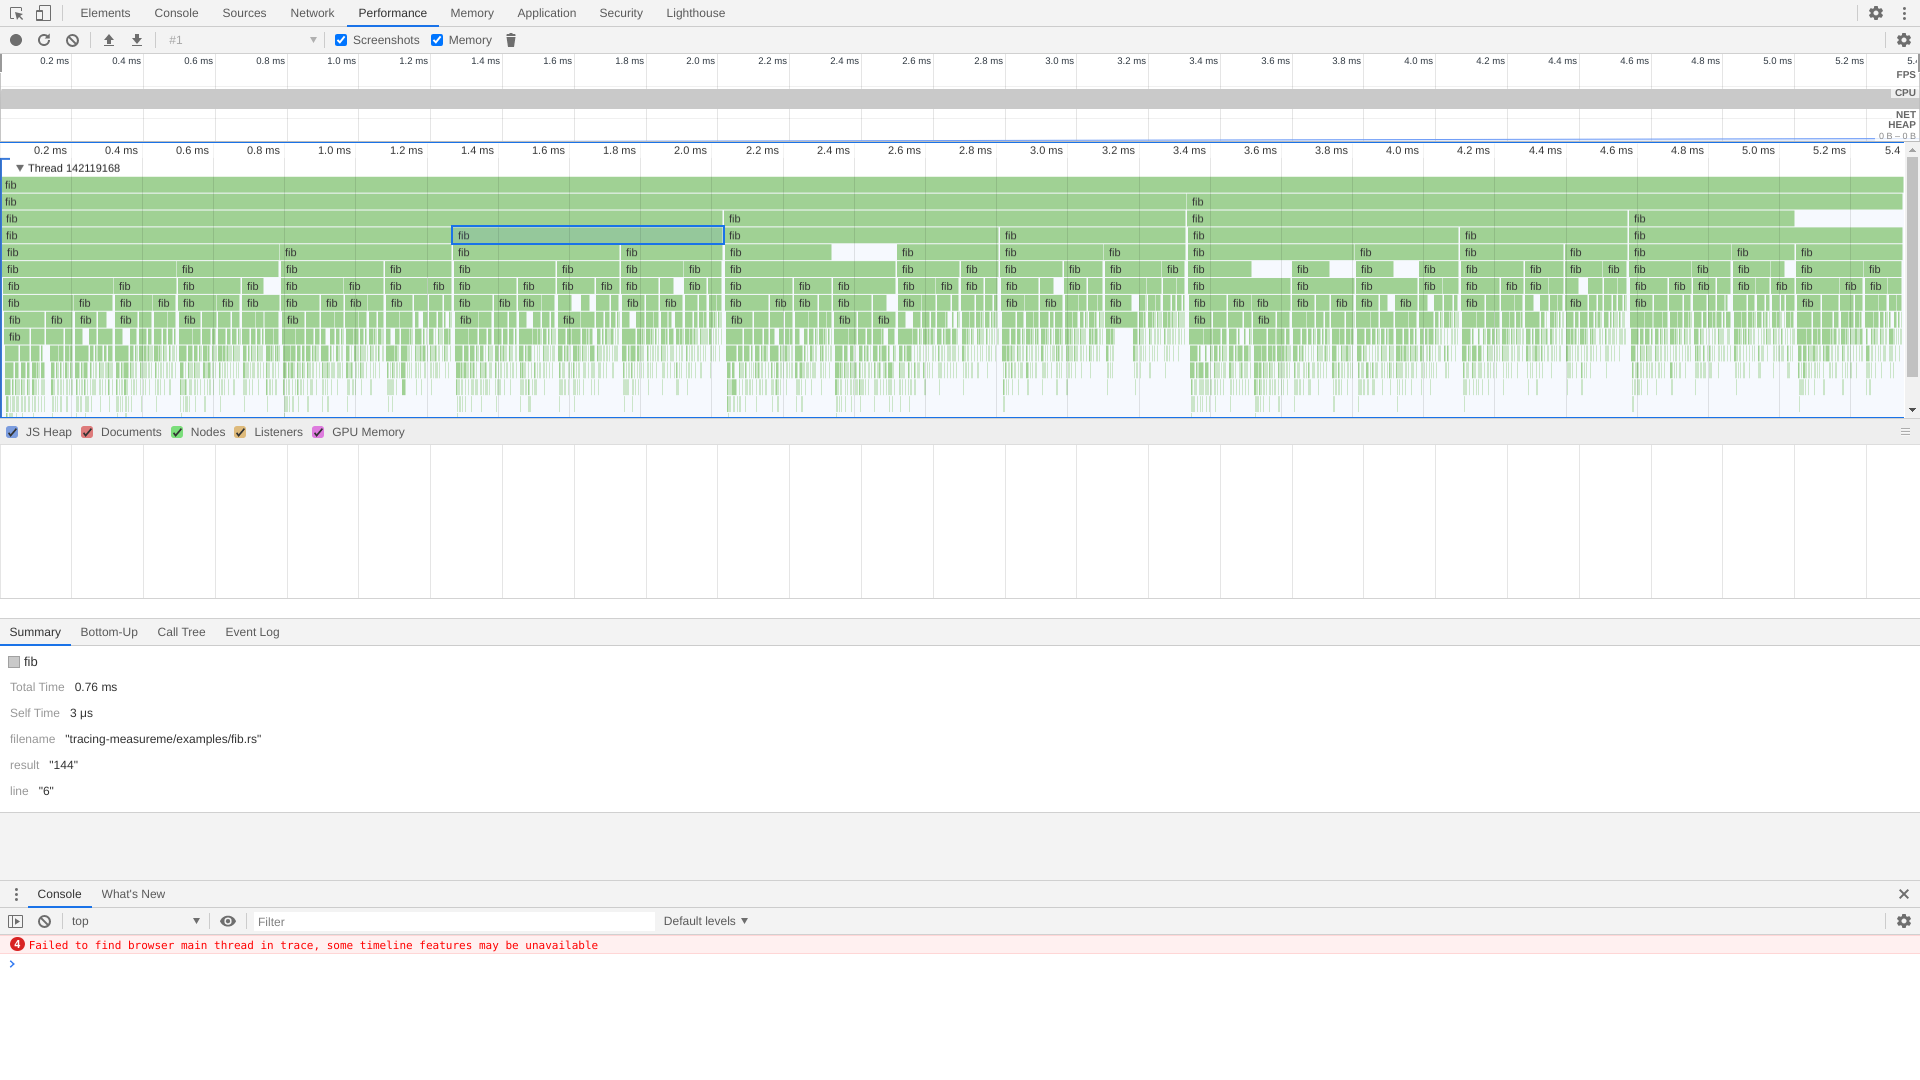 Chromium Profiler showing proper key-value information for the selected span